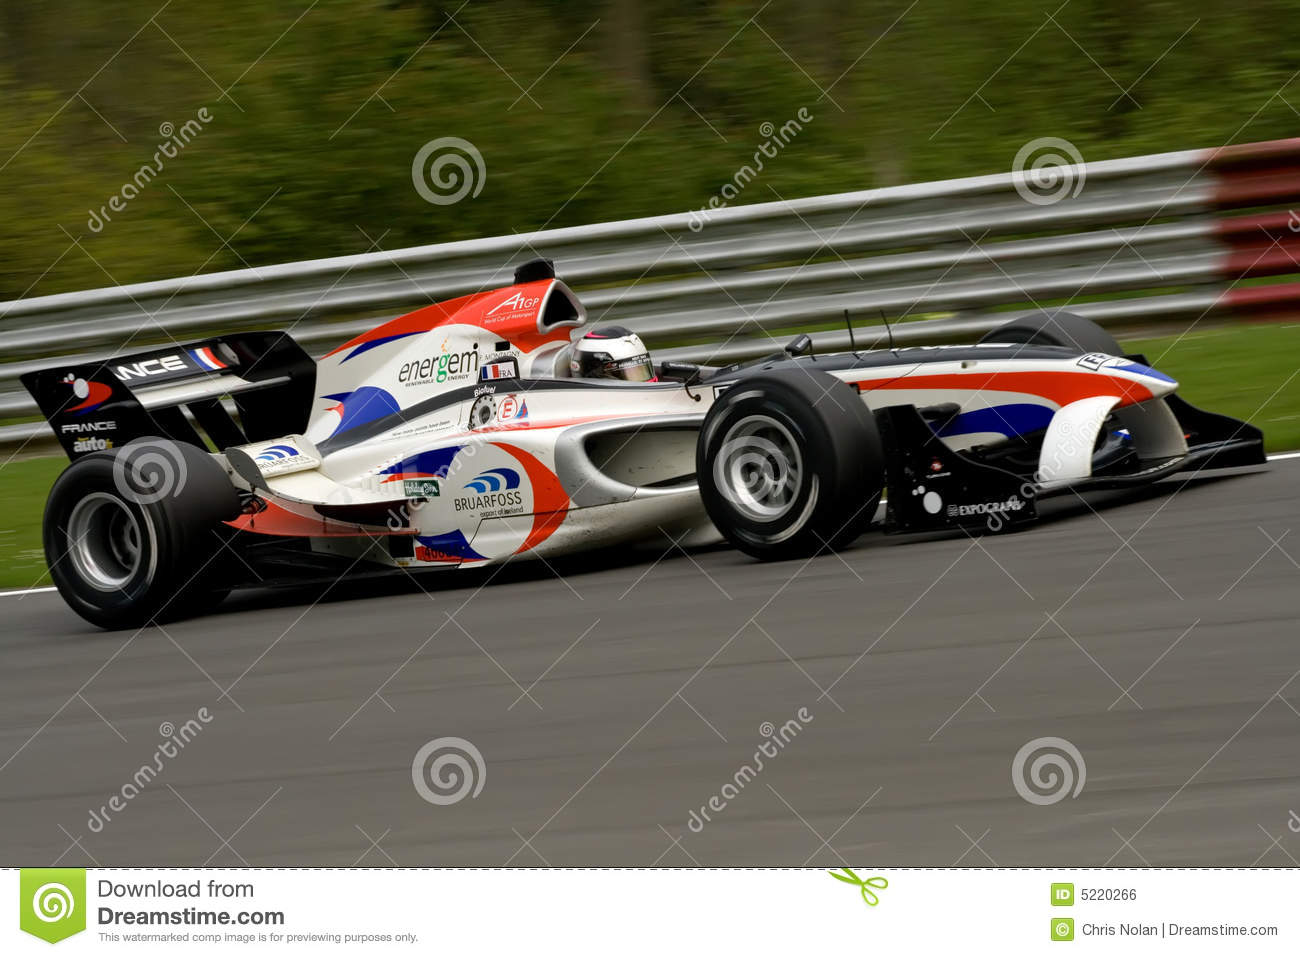 French a1 gp race car